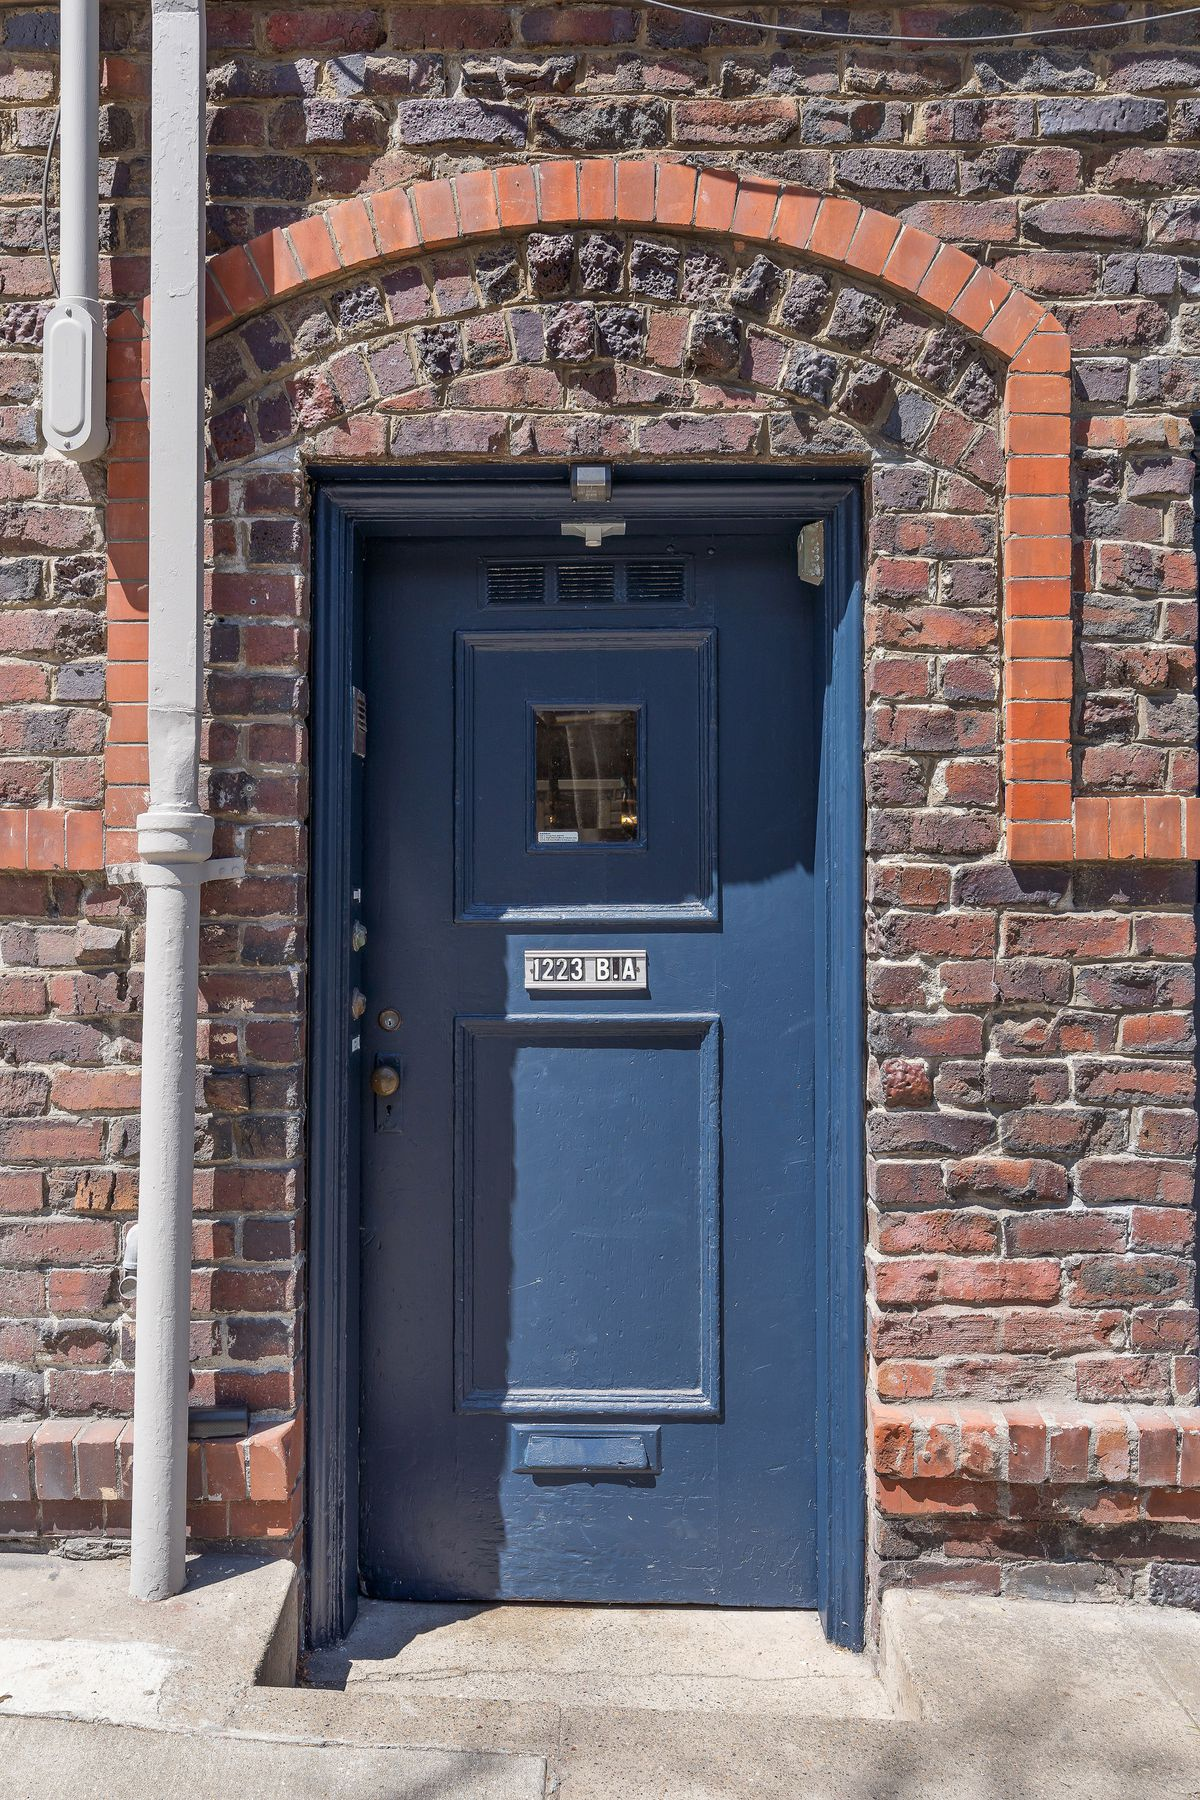 A blue door surrounded by brick that makes up the facade of the main building.